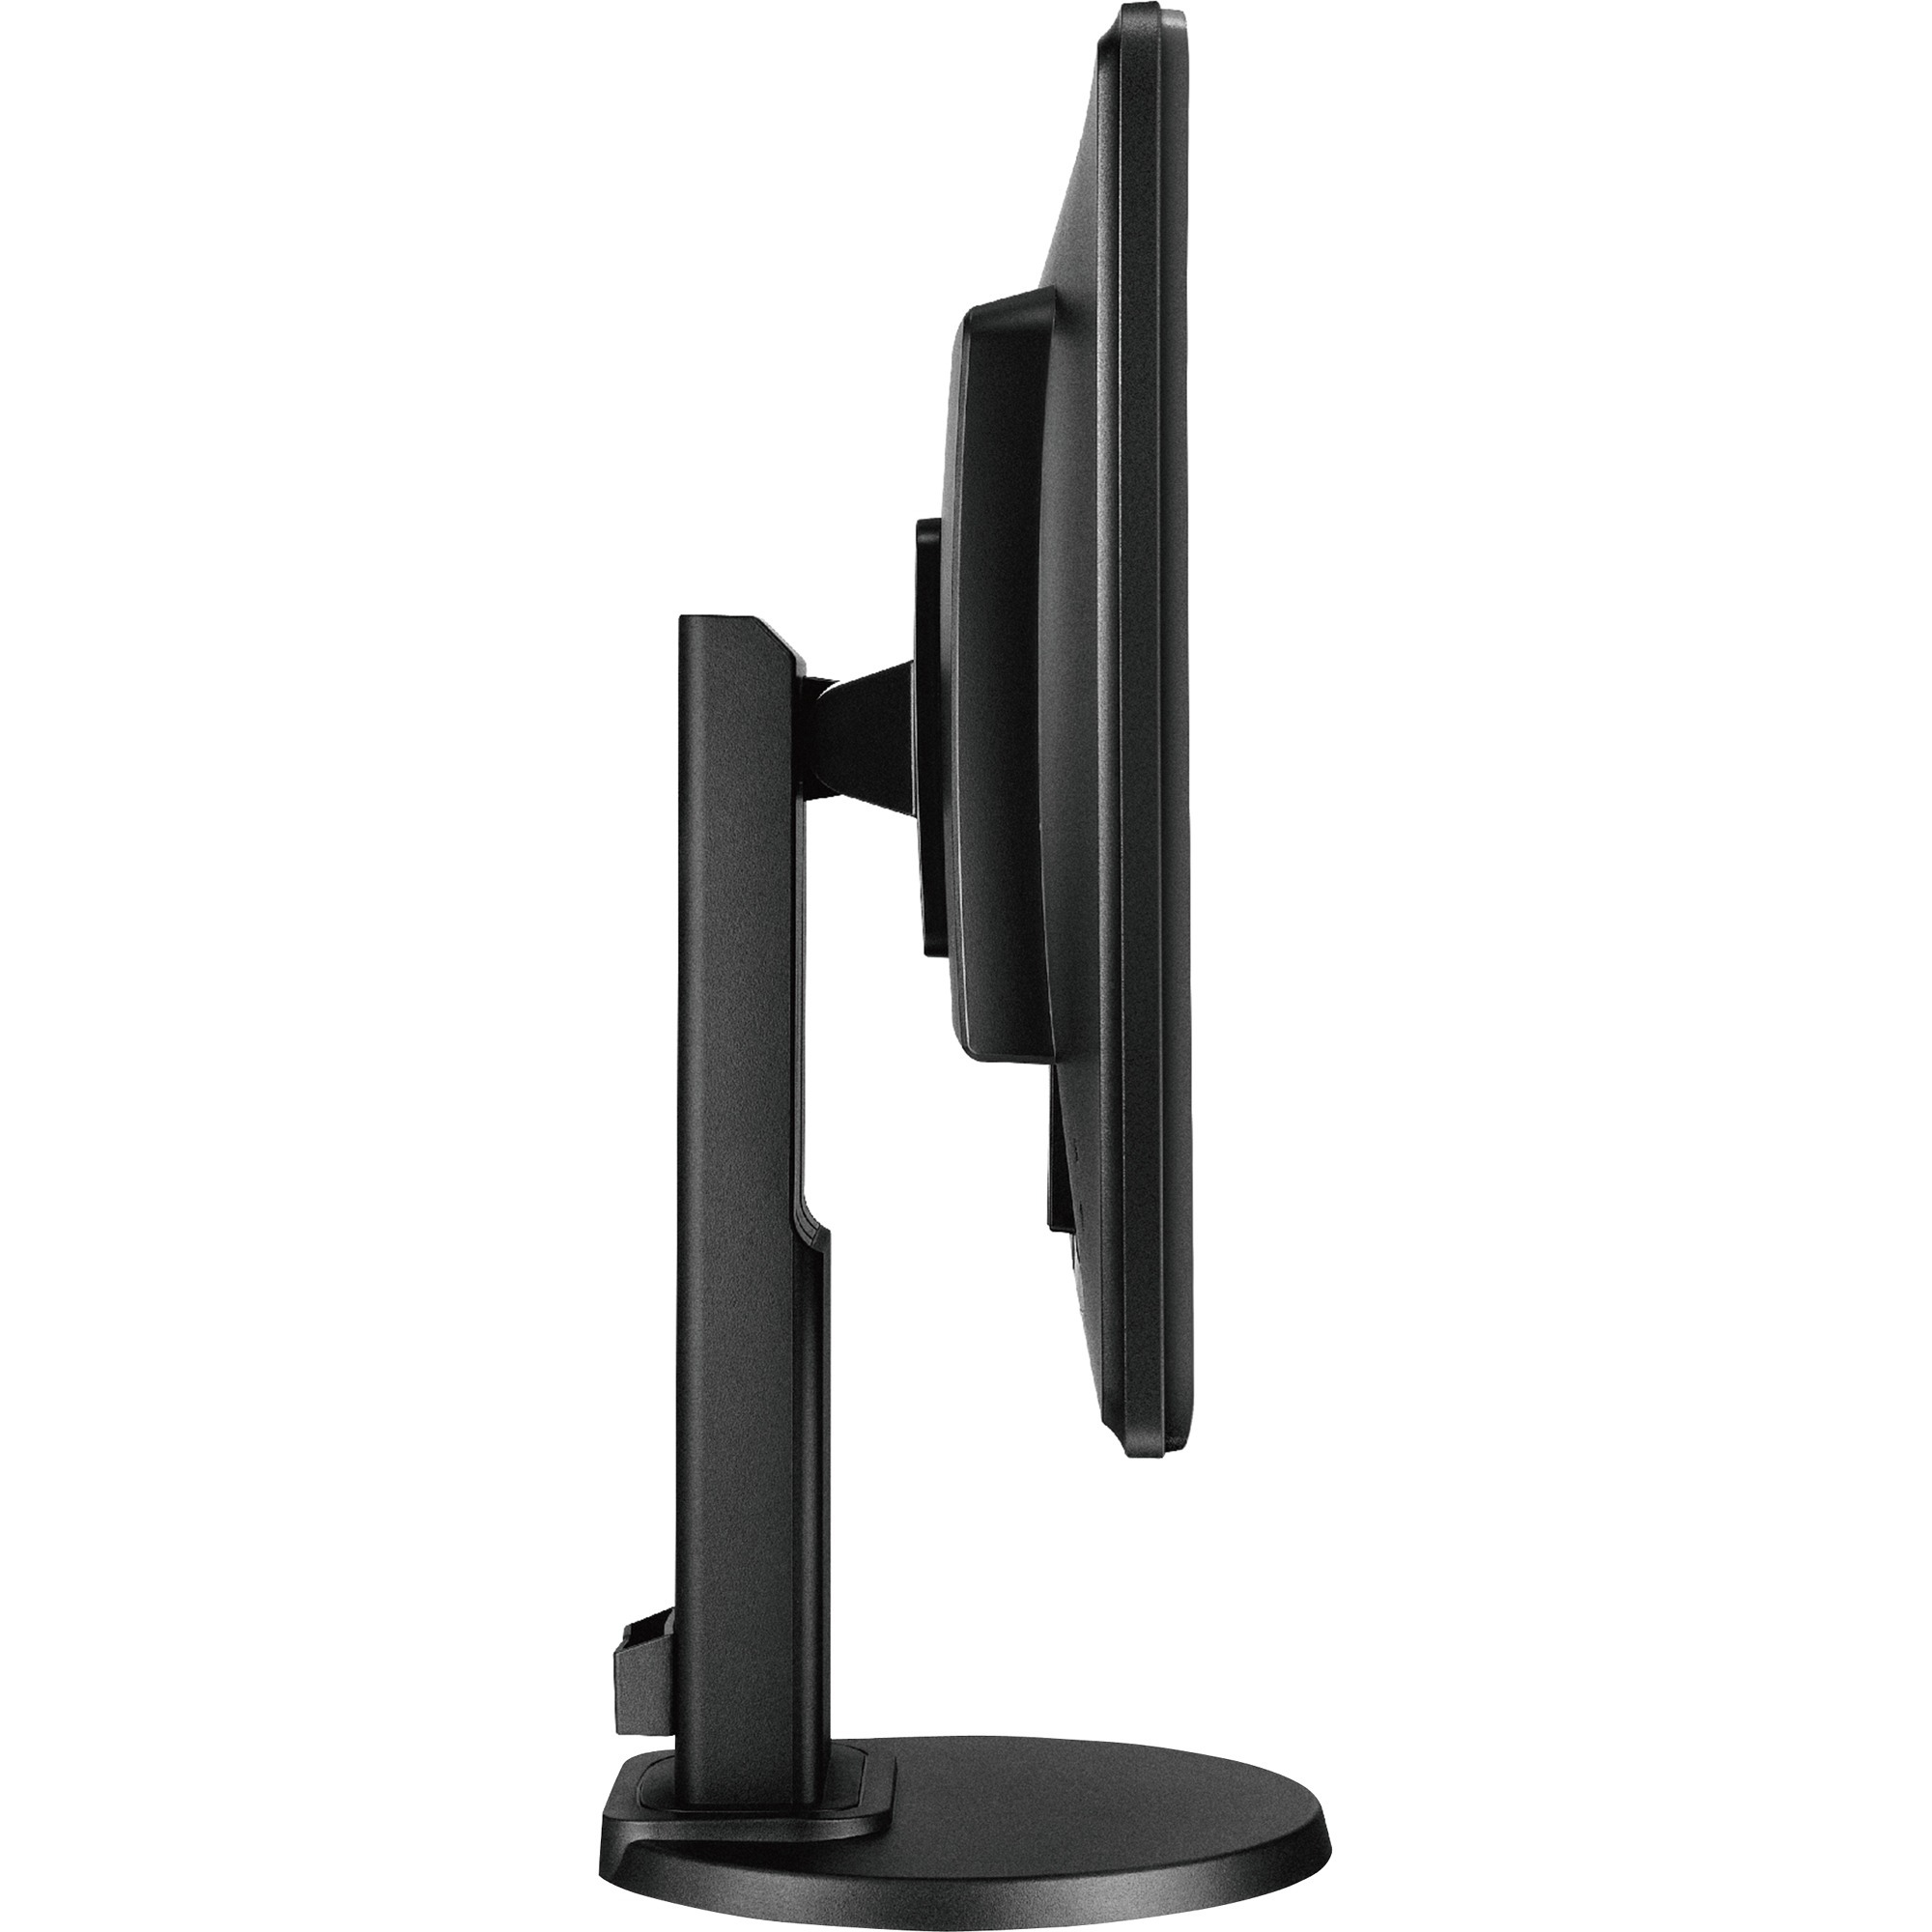 BenQ BL2405PT 24inch LED Monitor